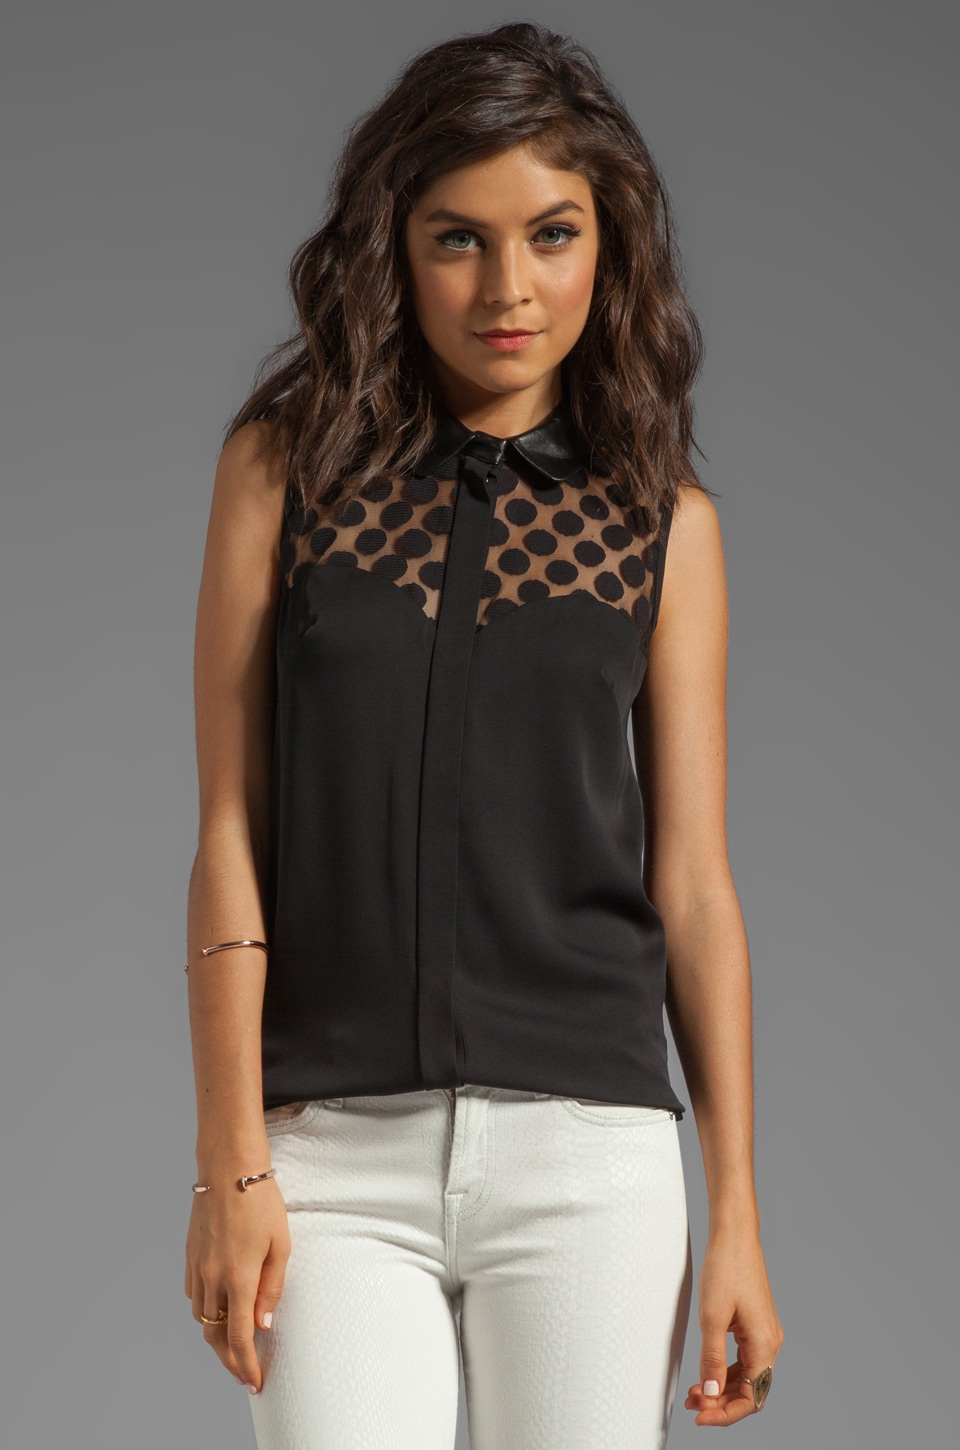 MILLY Gumball Dot Lace Natalia Leather Collar Top in Black